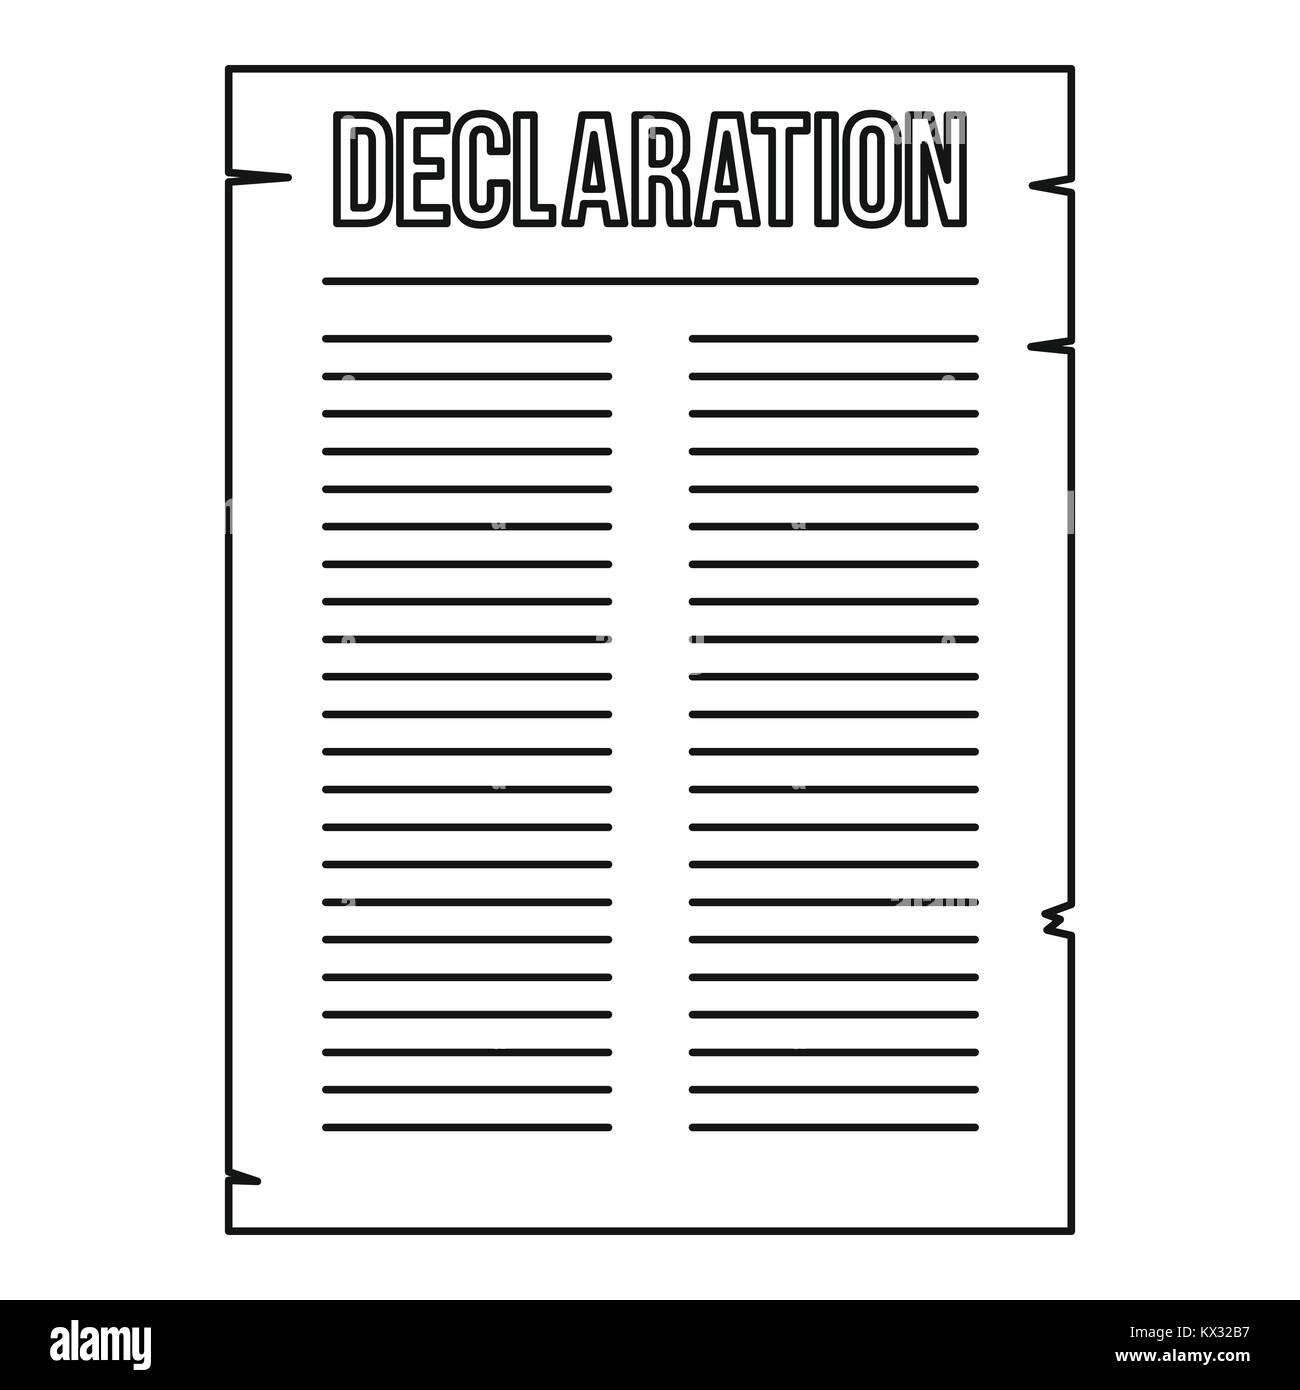 Declaration of independence icon, outline style - Stock Image